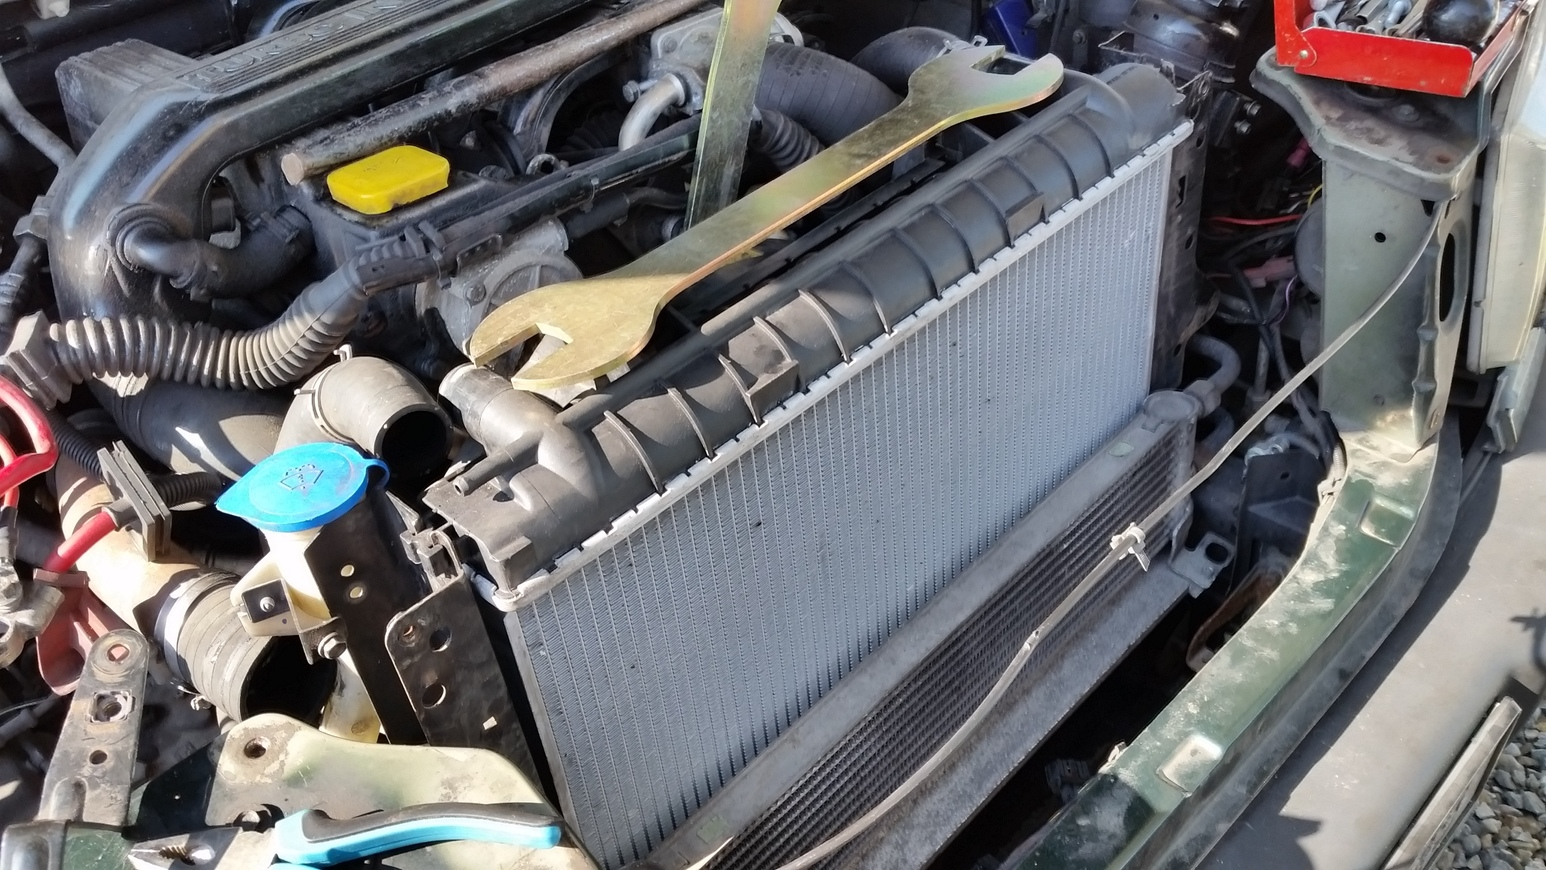 New motor, an old P38, baptised in pain already! - Range